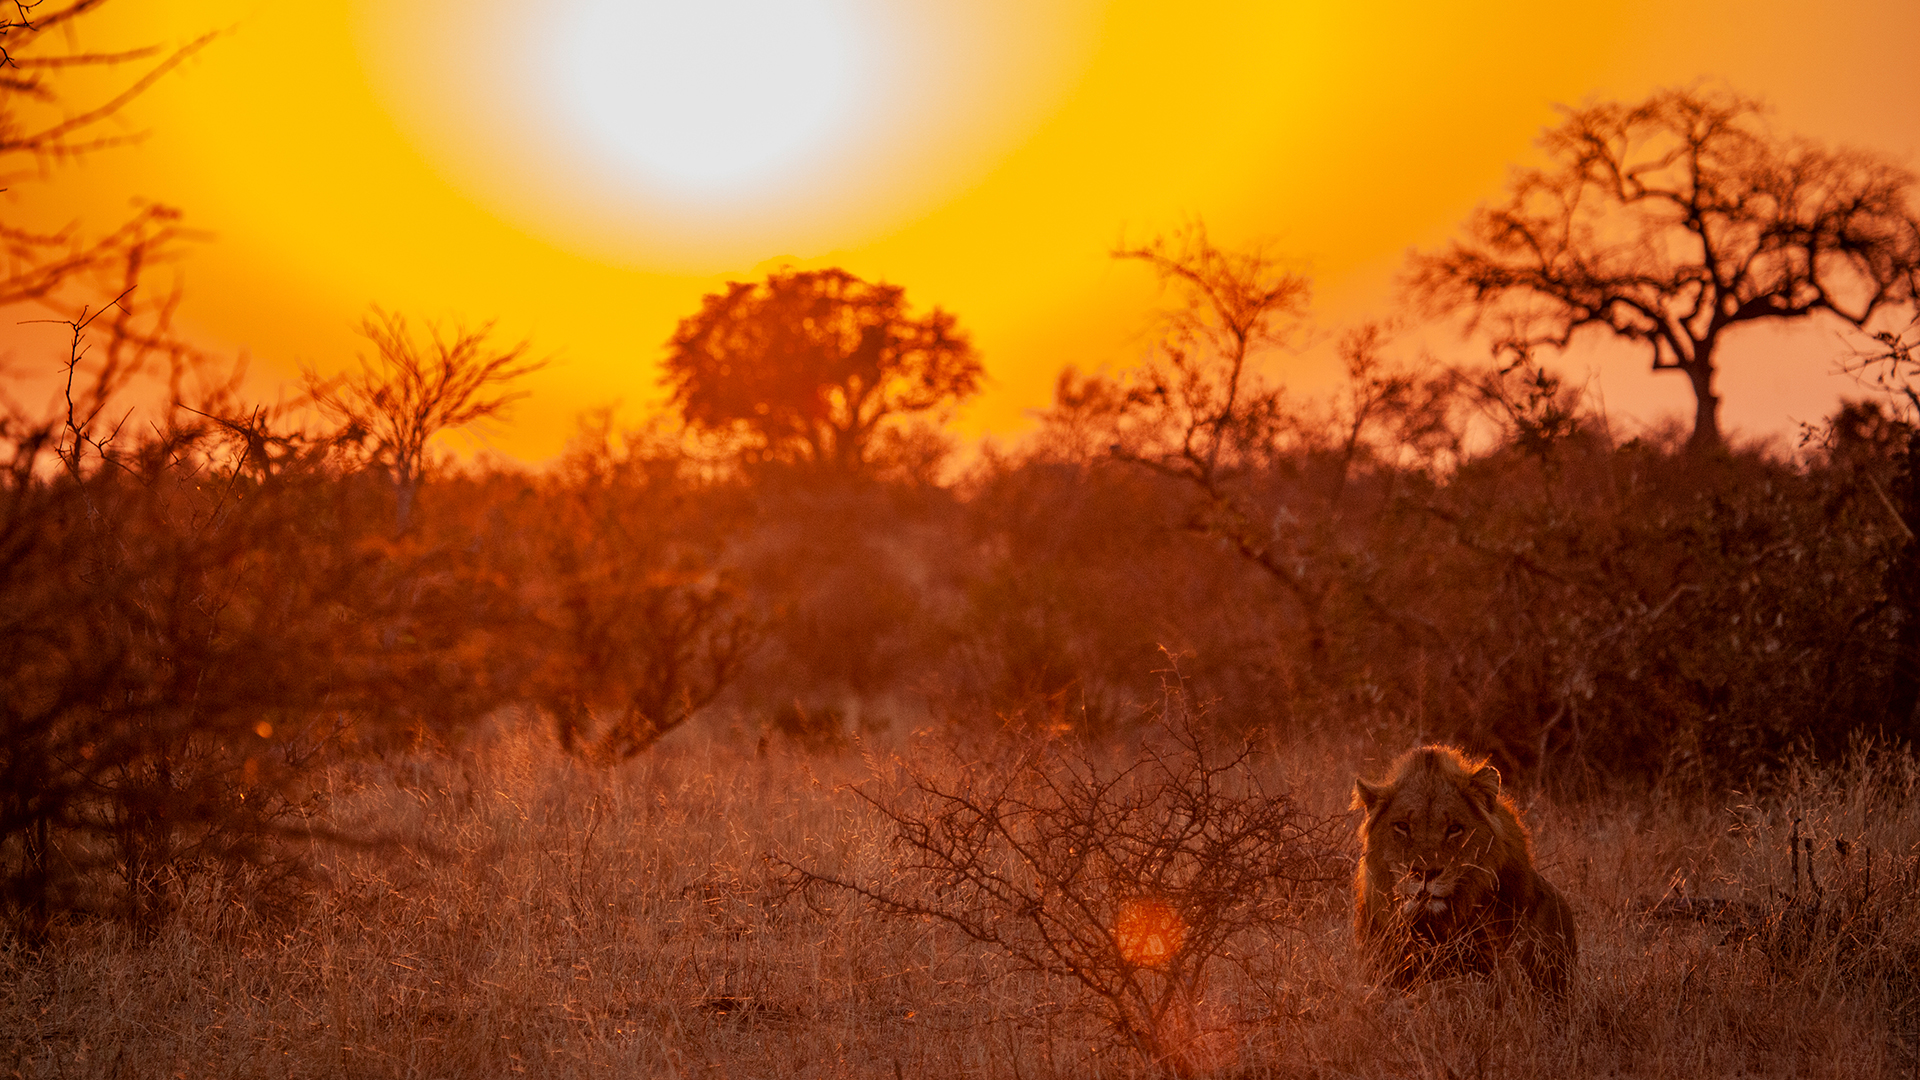 World Lion Day: Saving South Africa's Legacy through Protected Areas